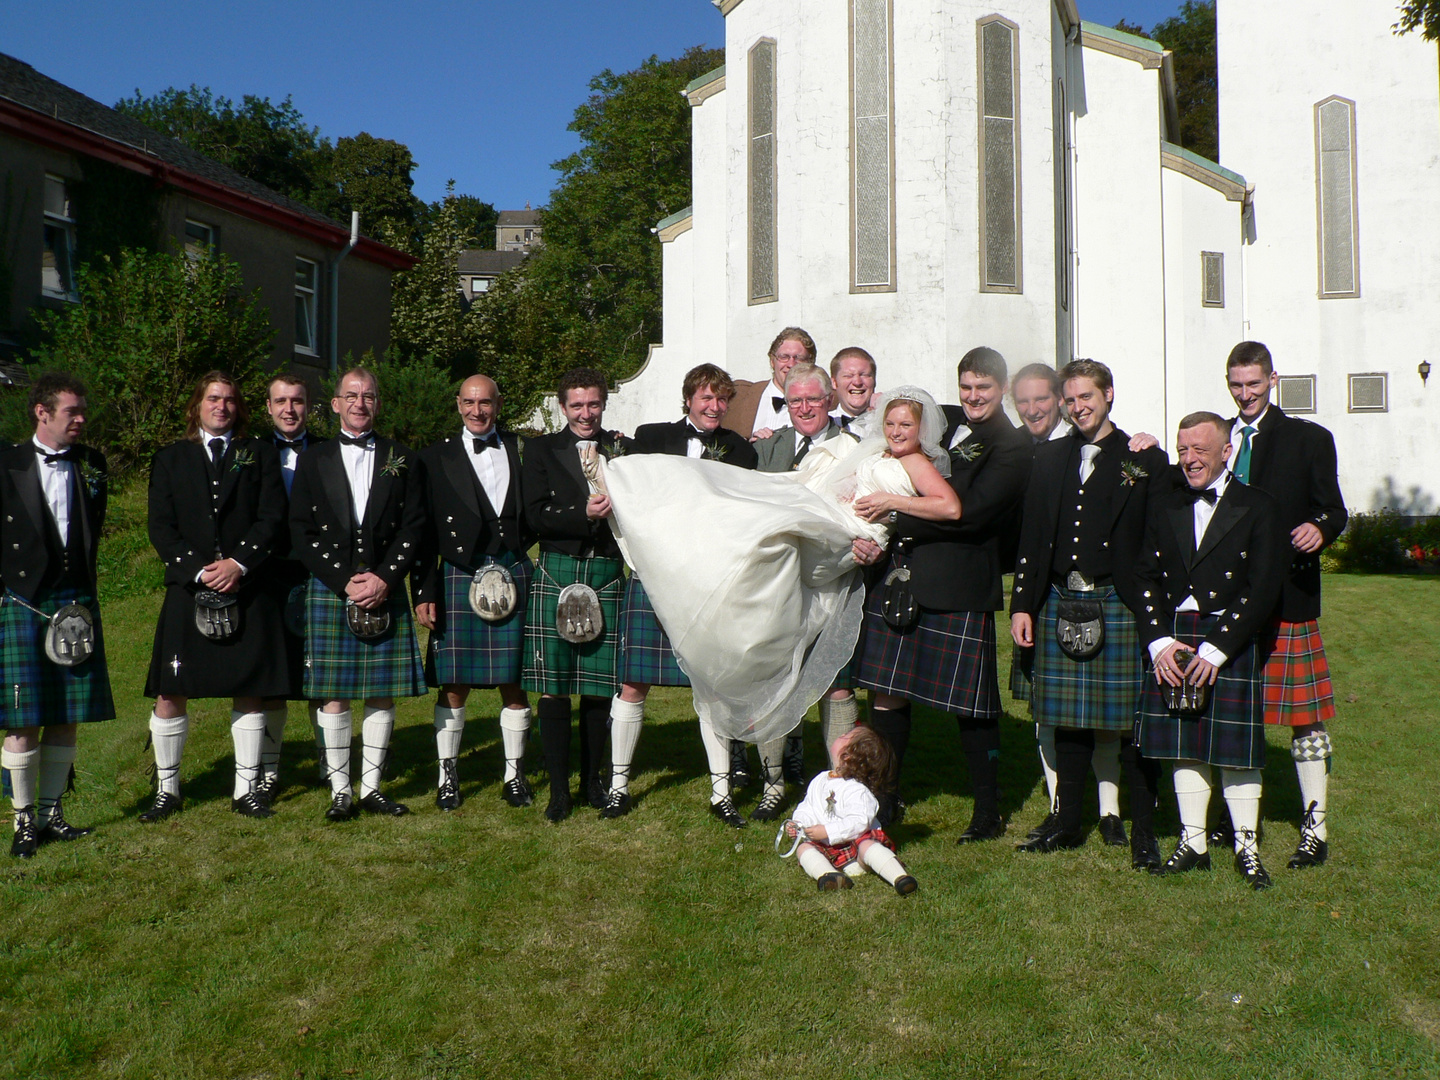 The Scottish Wedding of our Cousin Stuart (on the right beside the Bride) with his Deirdre